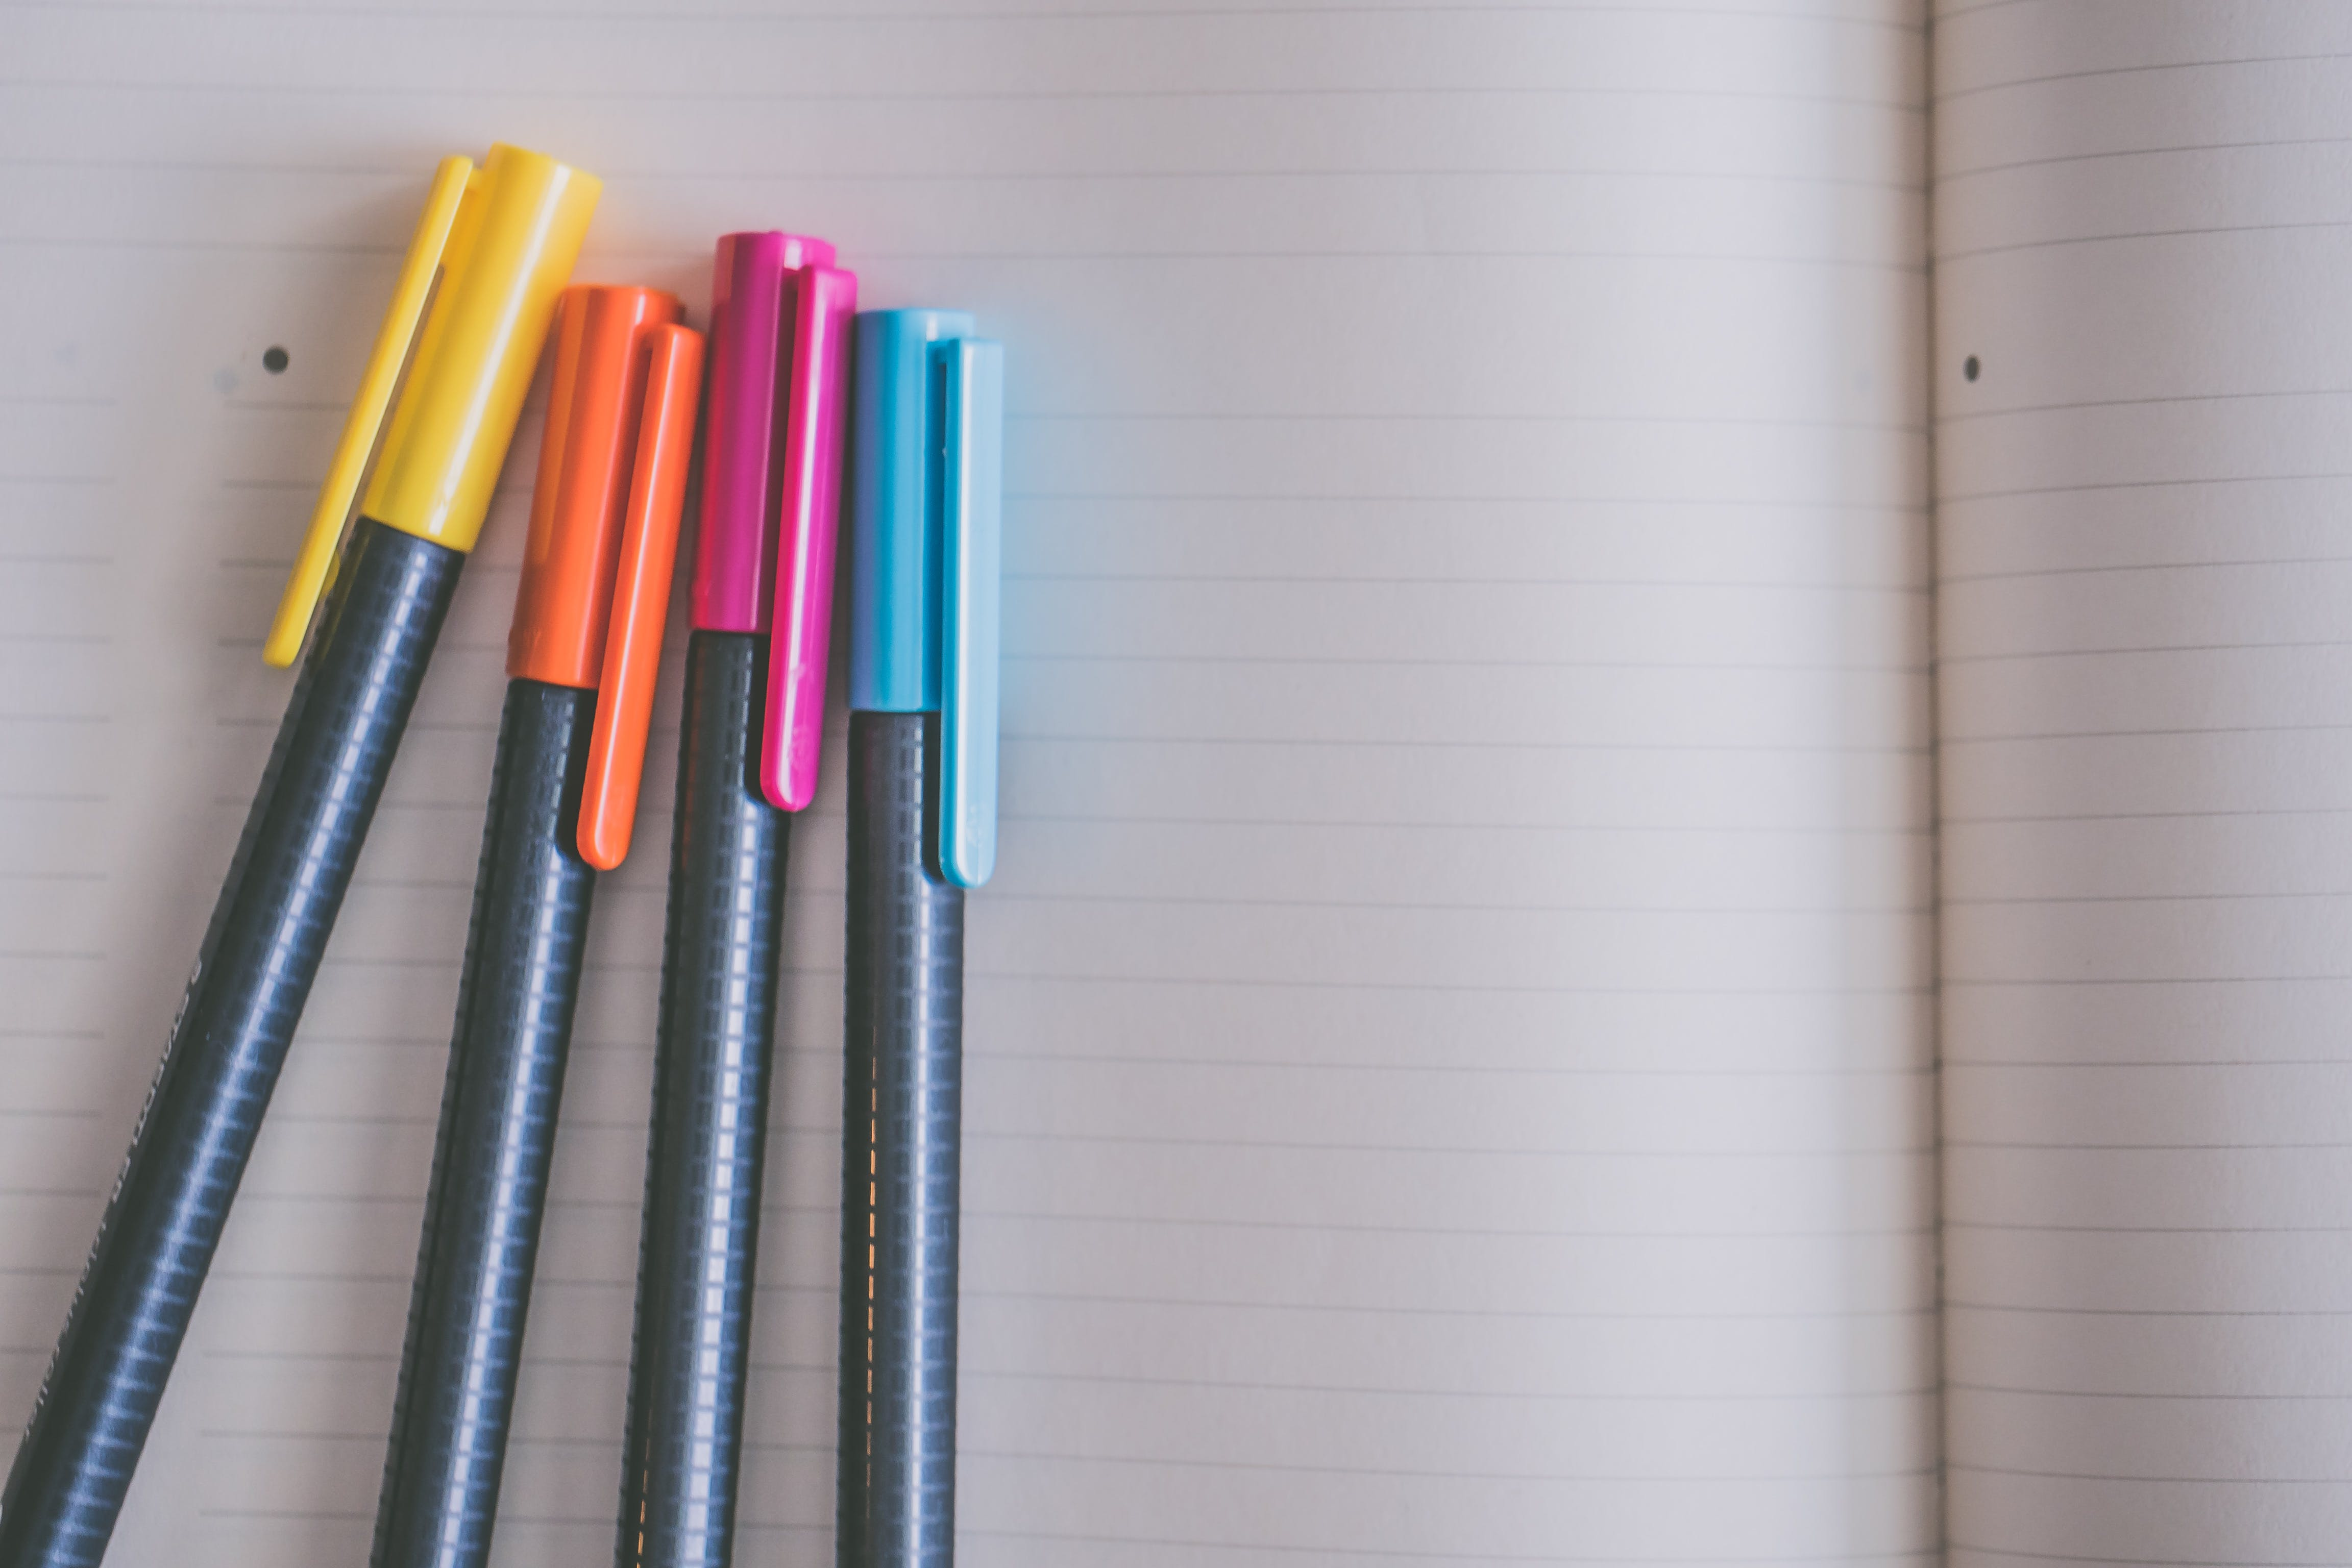 Yellow, Orange, Pink, and Blue Coloring Pens on White Notebook